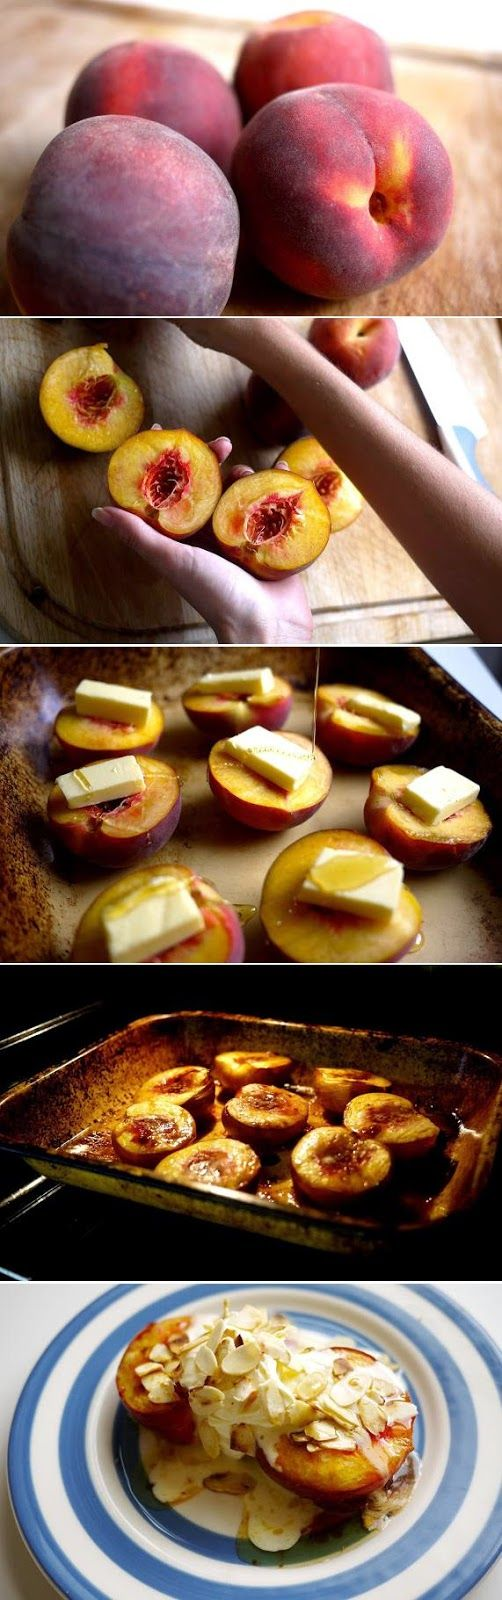 Food & Drink: Peaches a Special Way